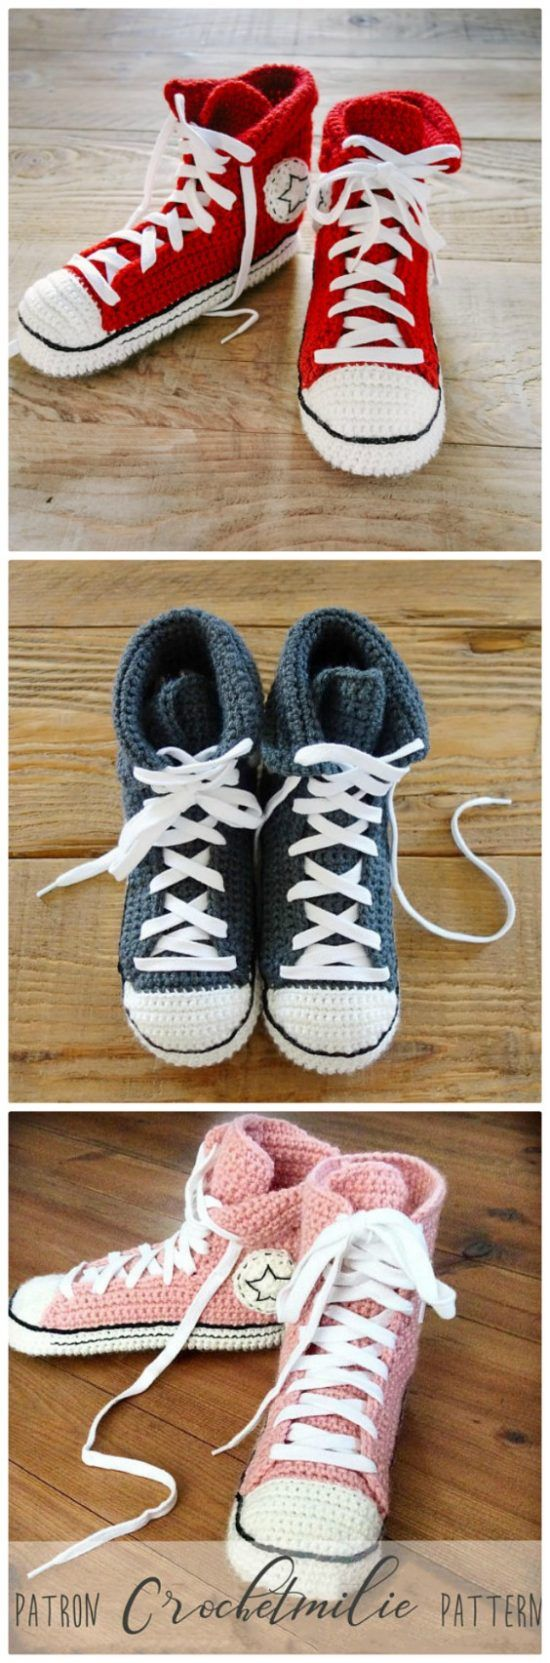 Crochet Sneakers Slippers Pattern Collection